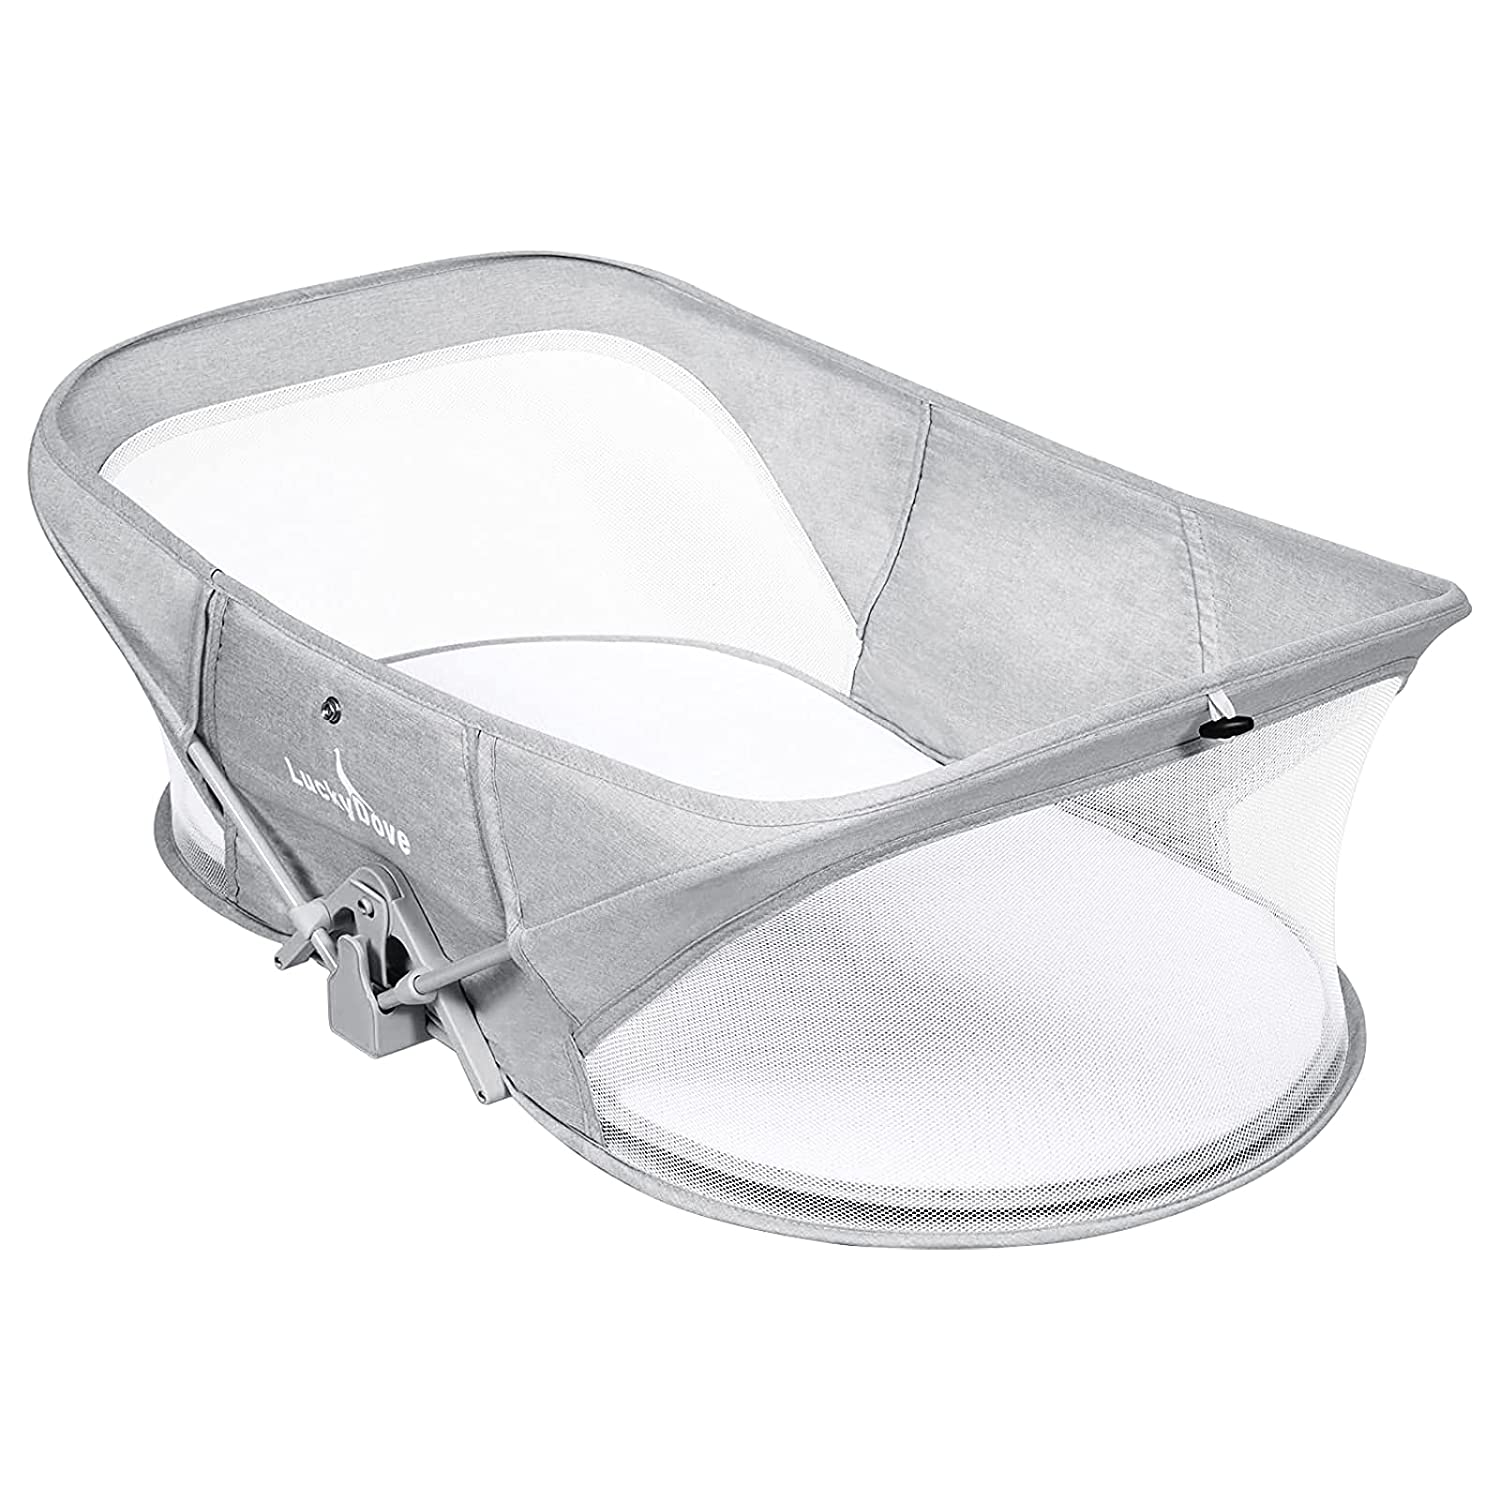 Luckydove Travel Bassinet-Folding Portable Bassinet,Bassinet for Baby,Portable Bassinet with Mosquito Net,Unique Patented Design,Easy to Fold and Lightweight,Washable,Grey